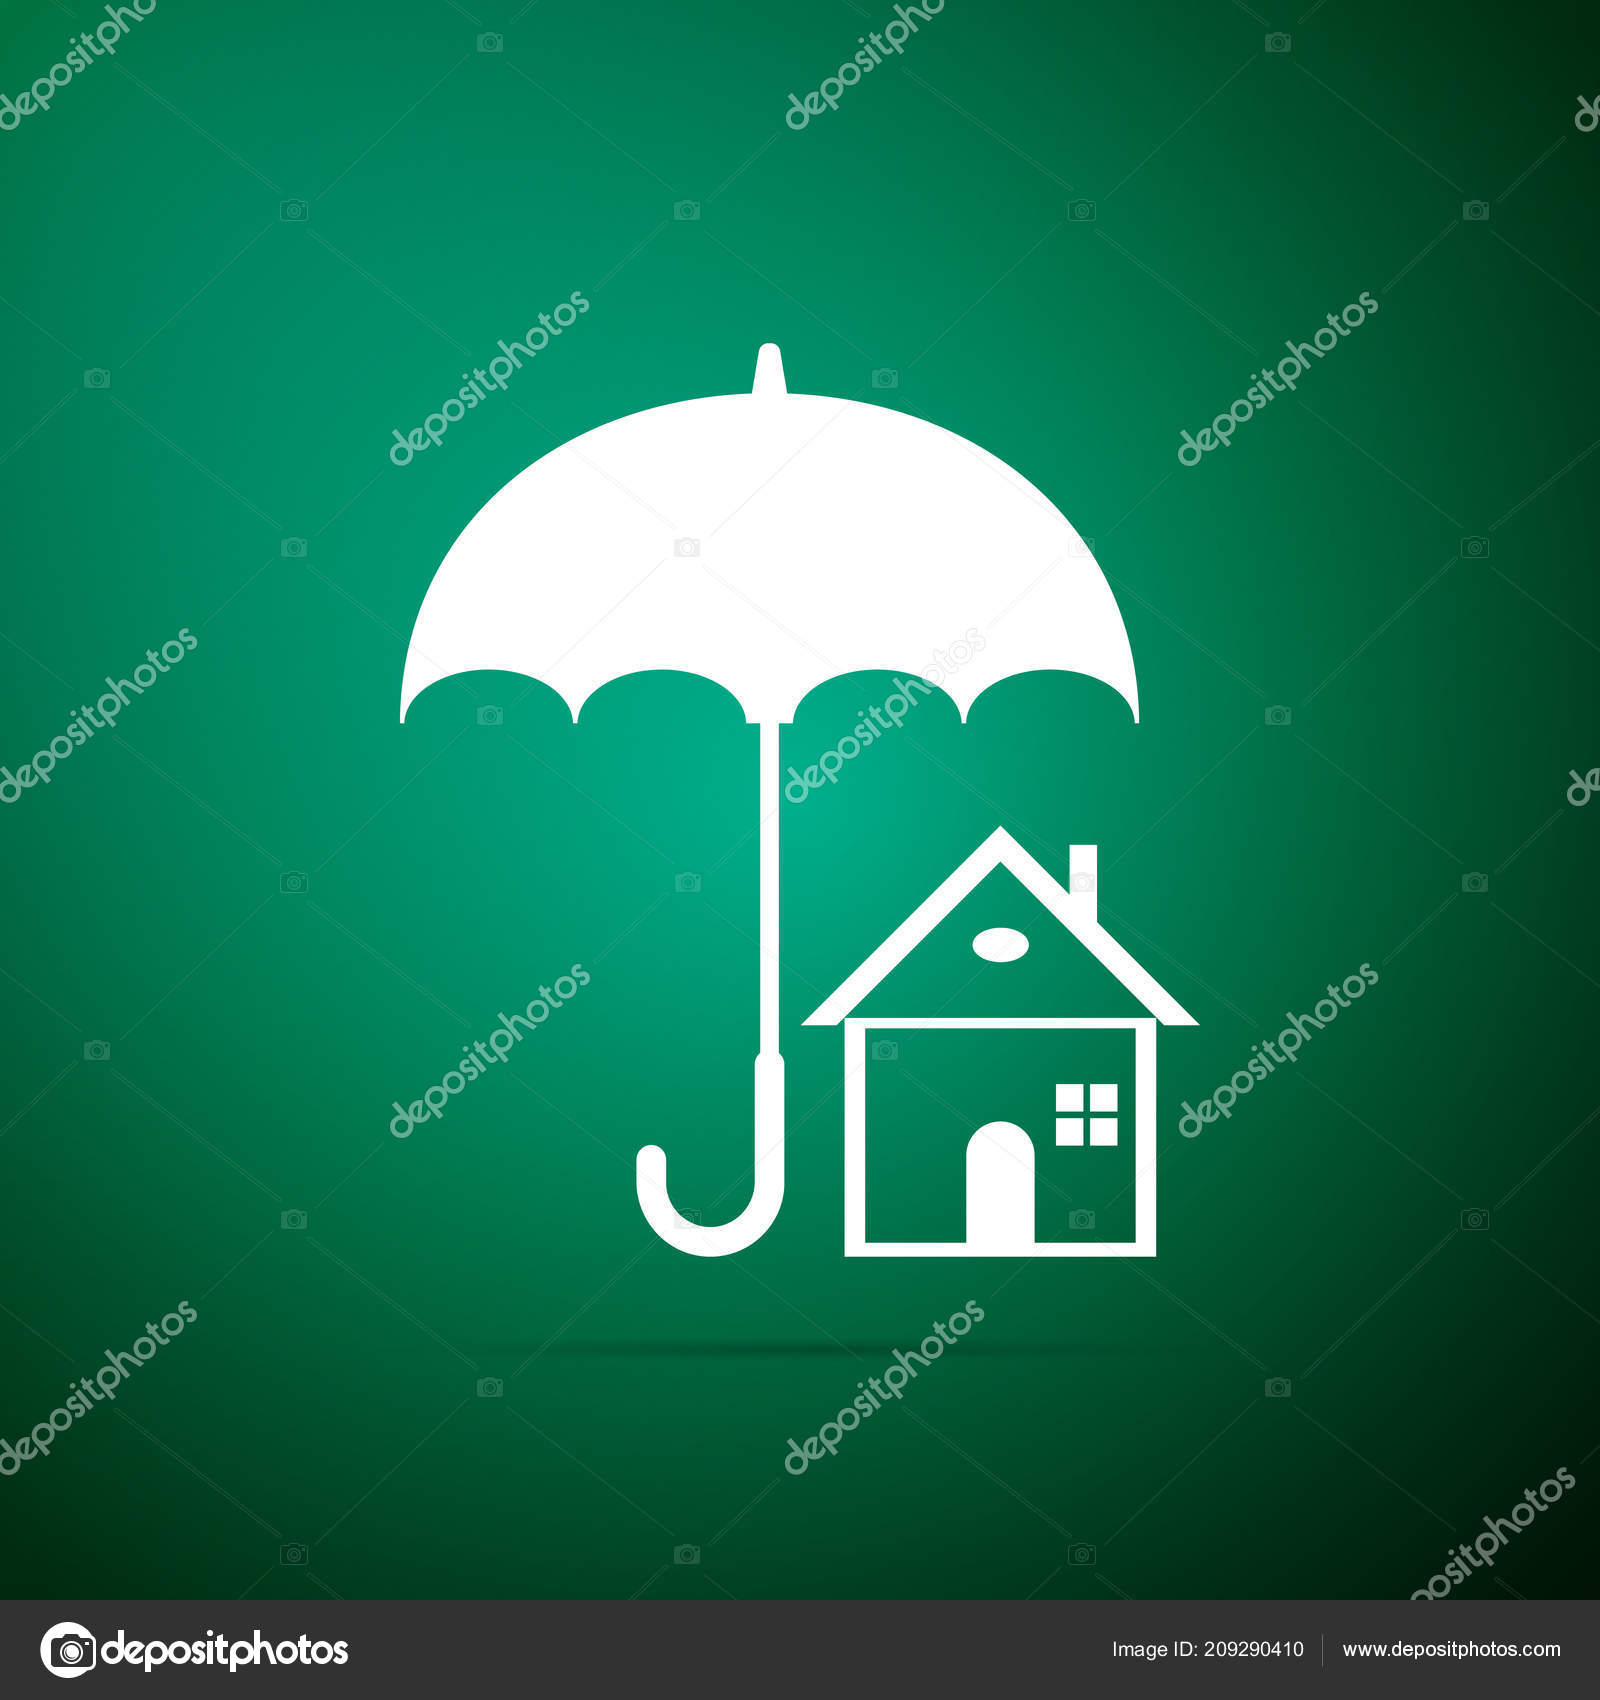 House With Umbrella Icon Isolated On Green Background Real Estate